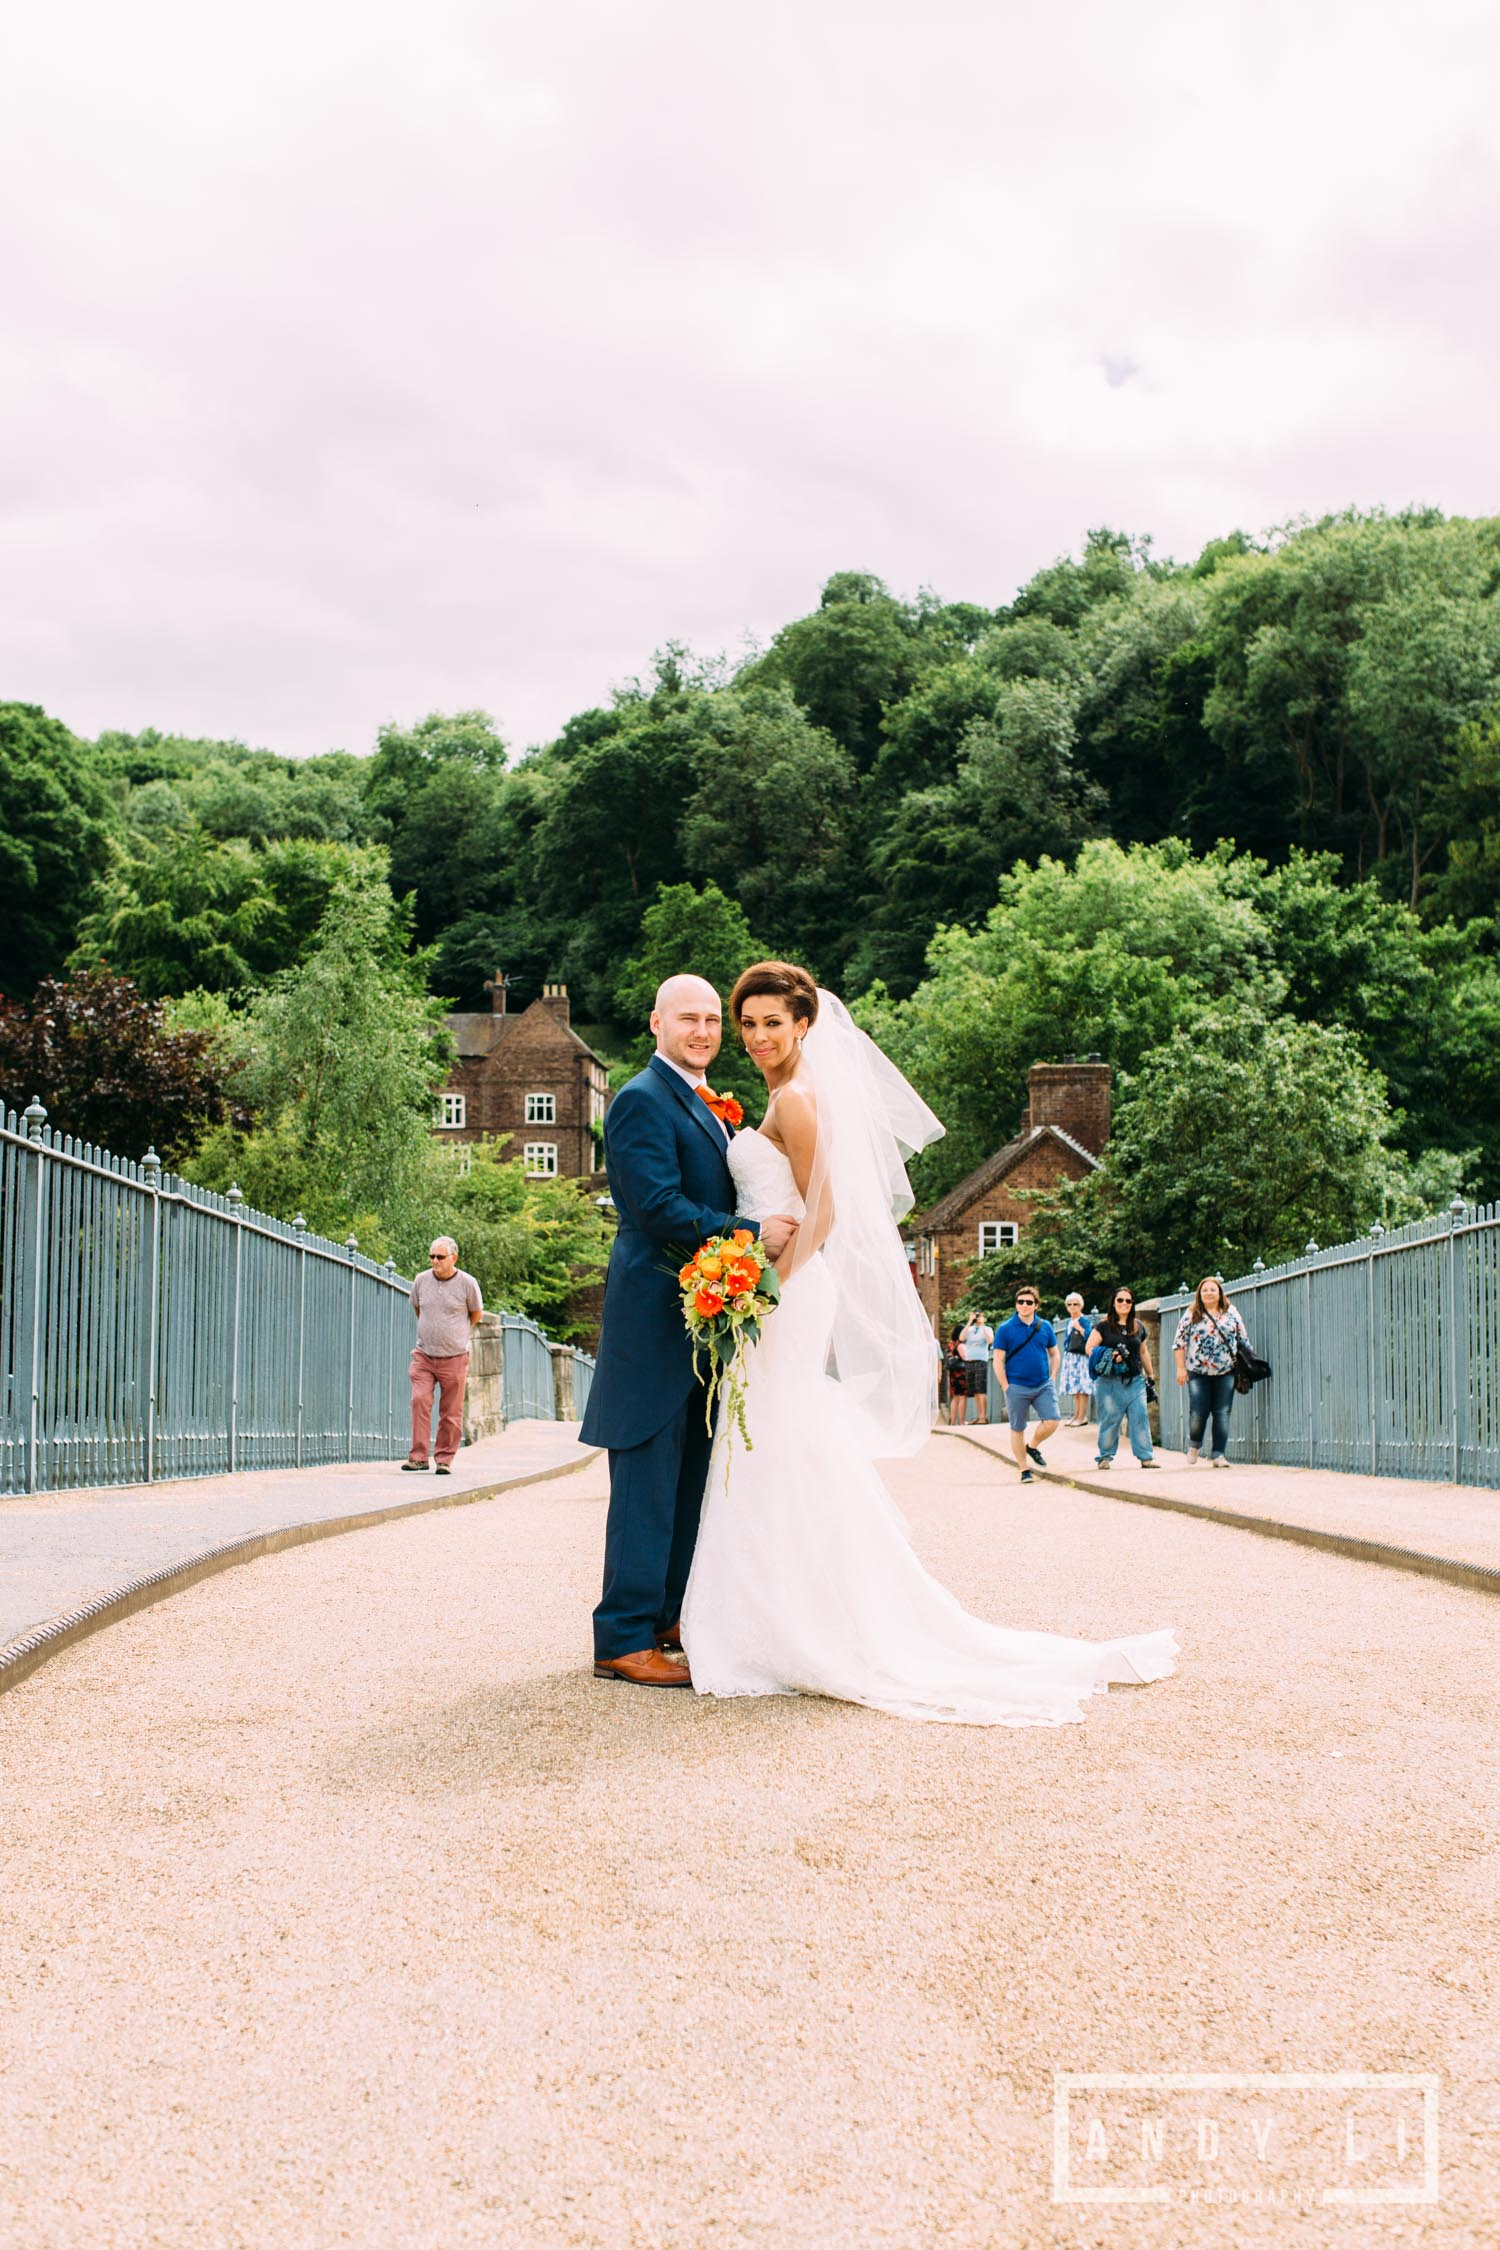 Enginuity Ironbridge Shropshire Wedding Photographer-082.jpg